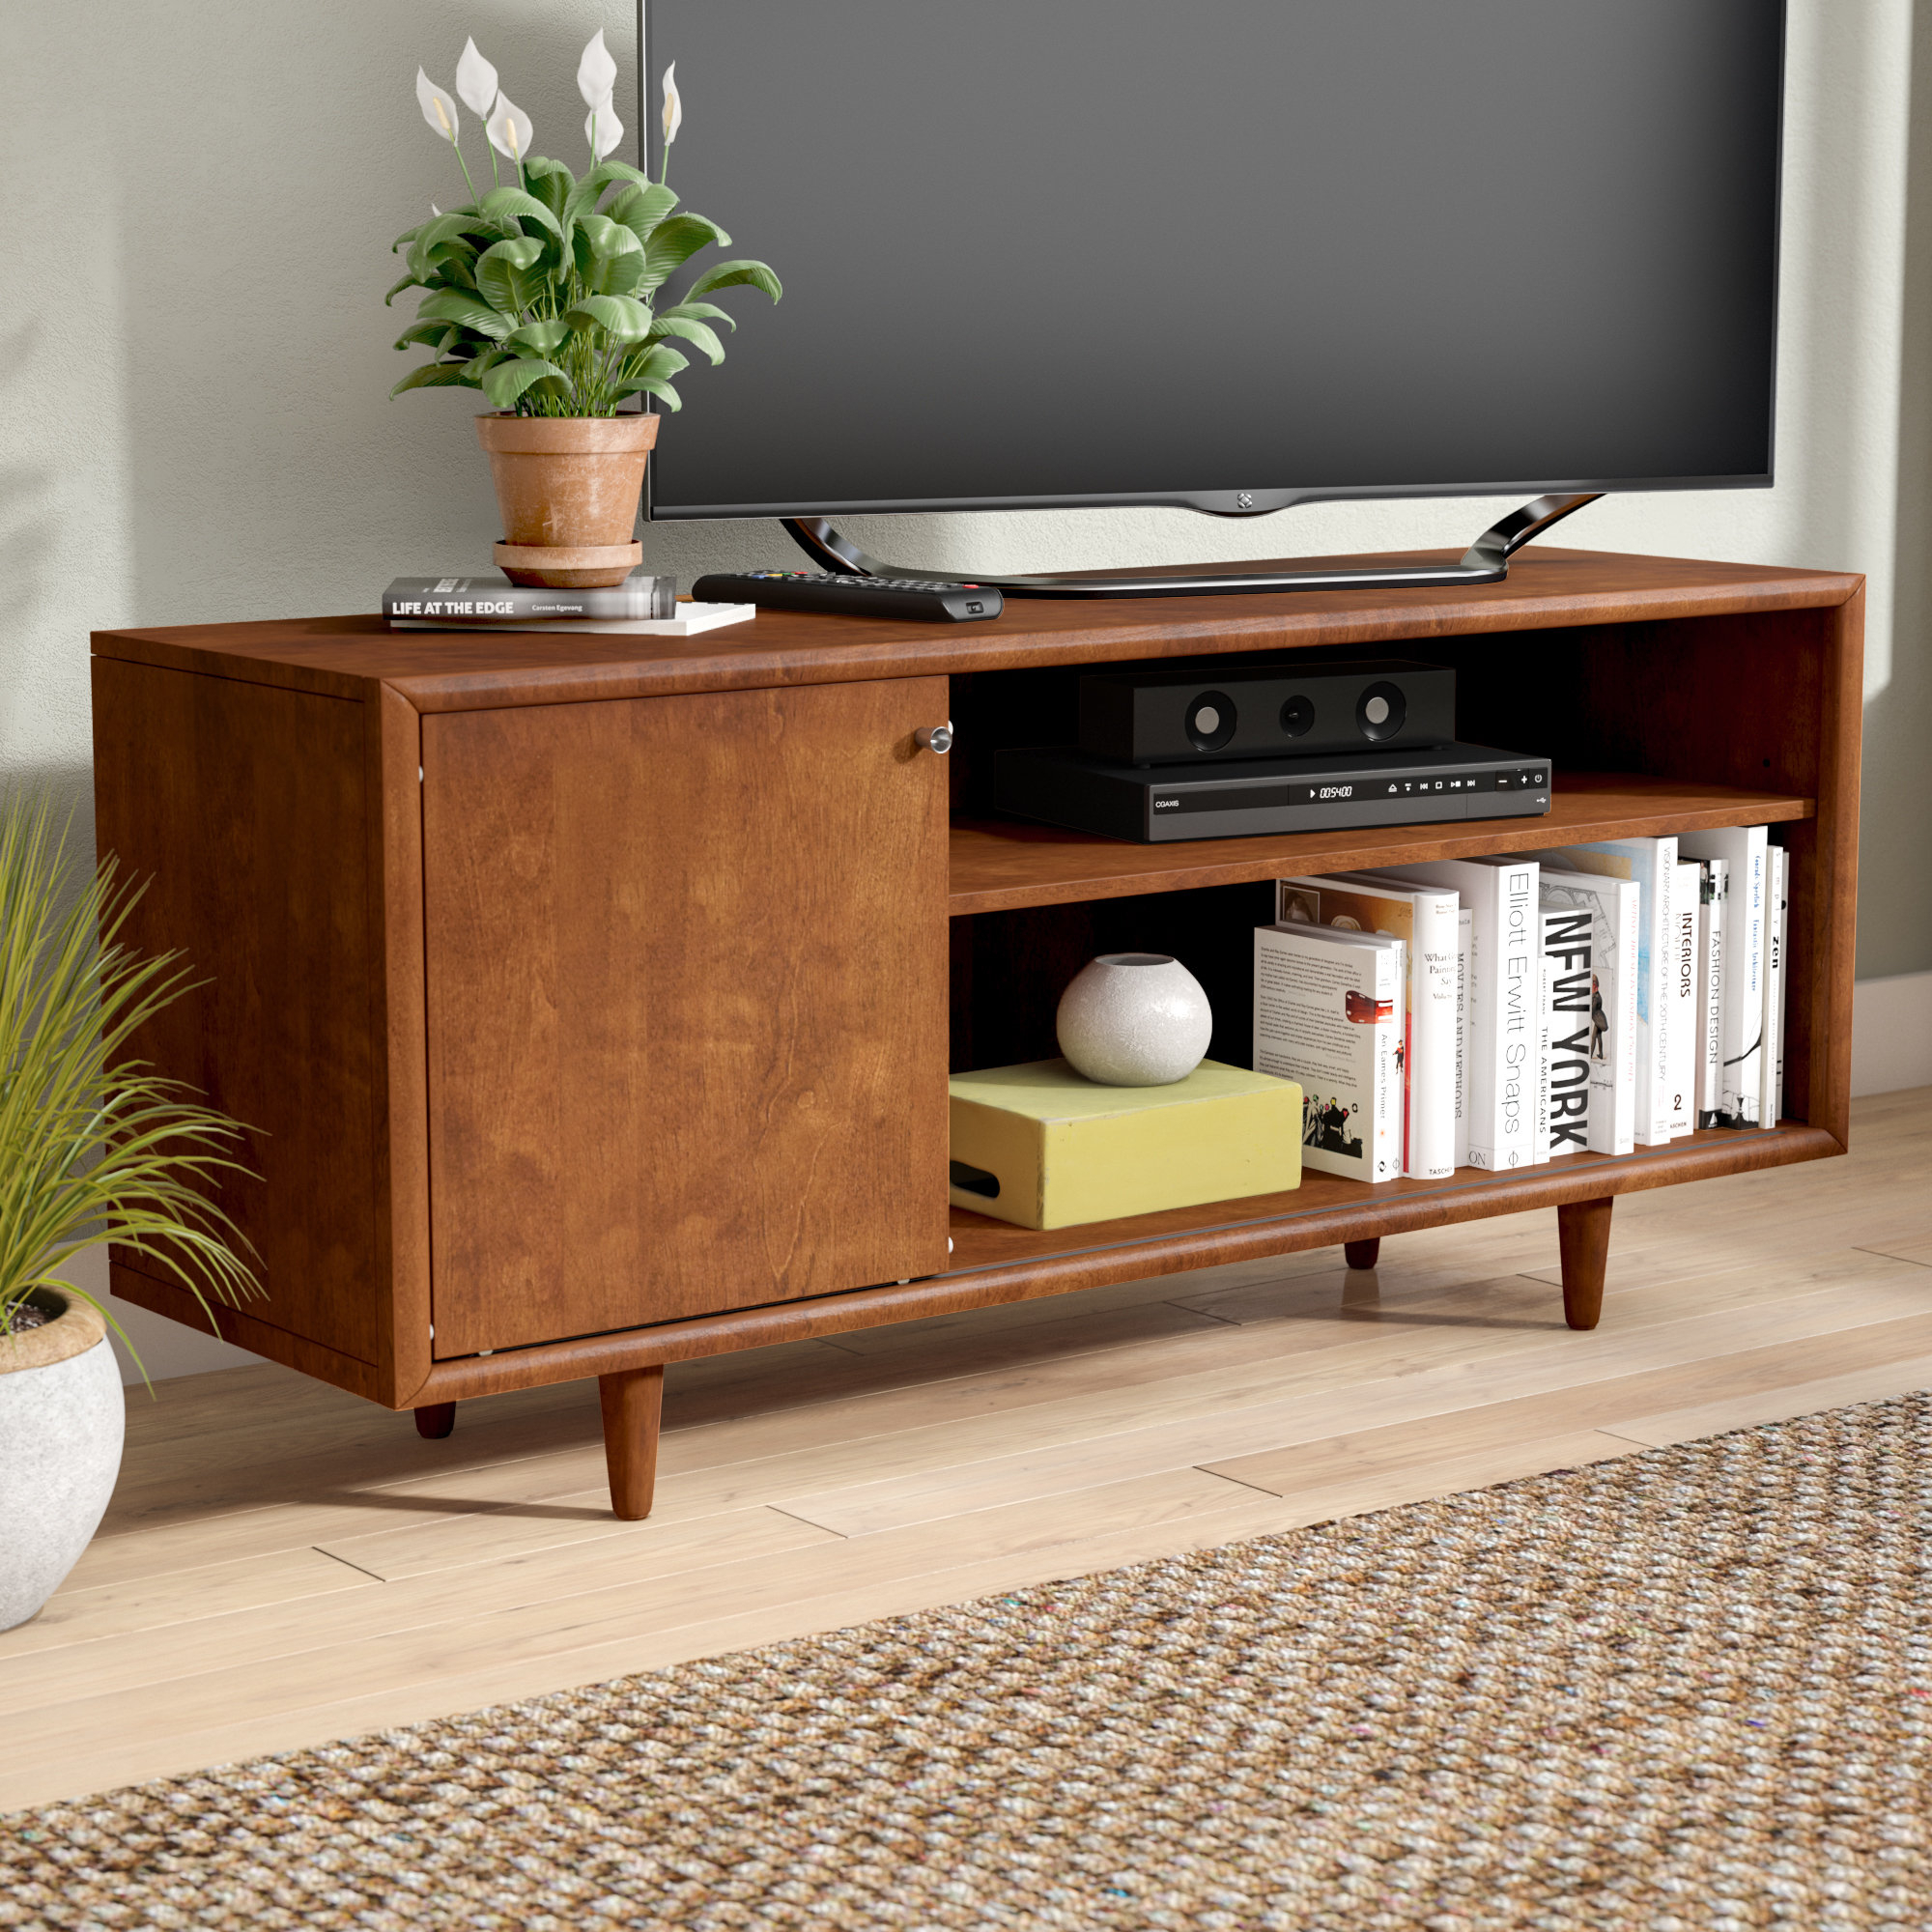 Tv Stands Sale You'll Love | Wayfair inside Century Blue 60 Inch Tv Stands (Image 26 of 30)